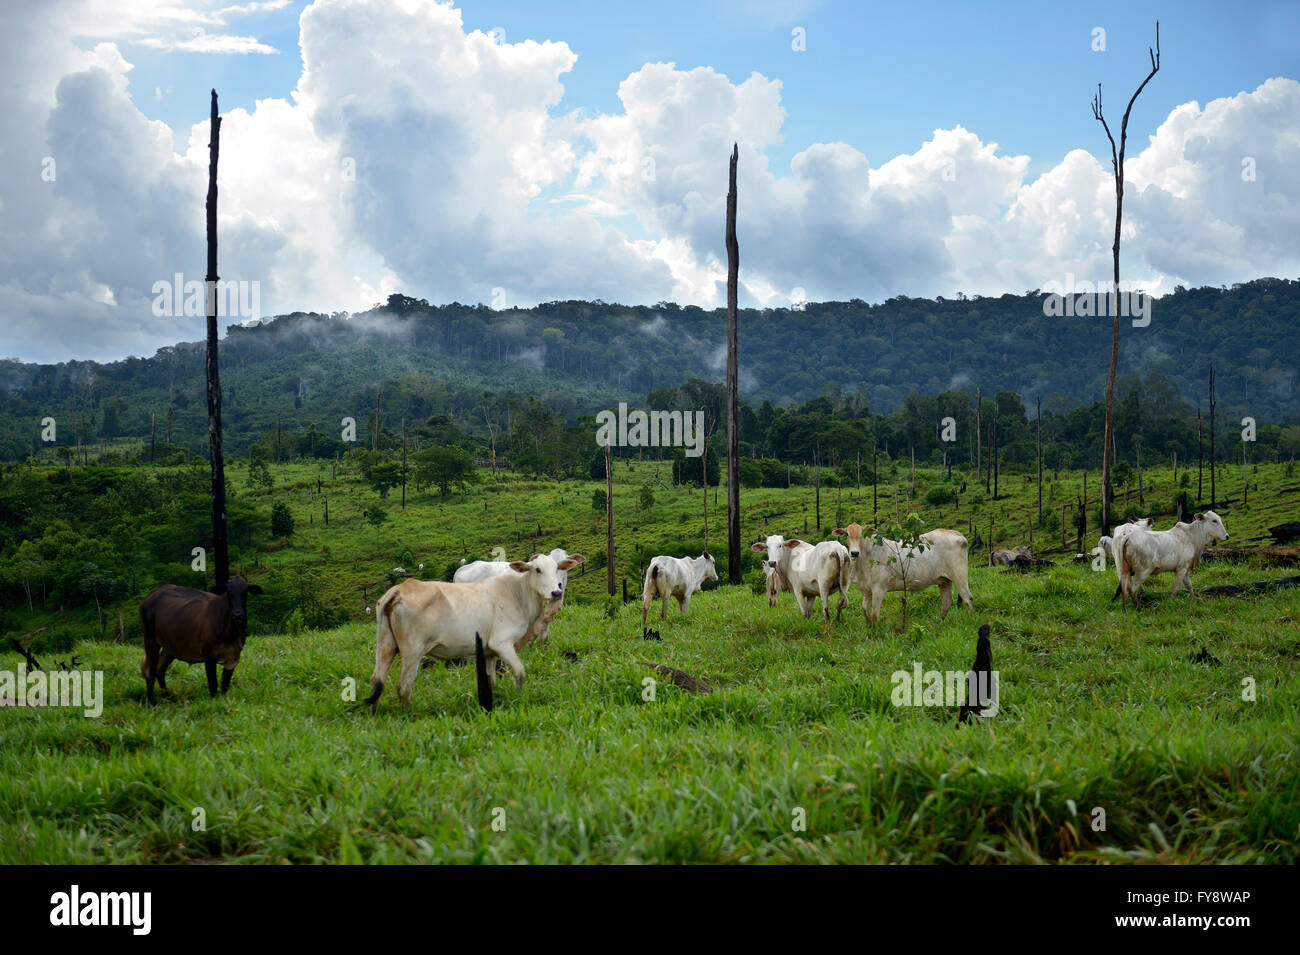 Brazil, Para, Amazon rainforest, Itaituba, slash and burn, cleared, cows on pastureland - Stock Image